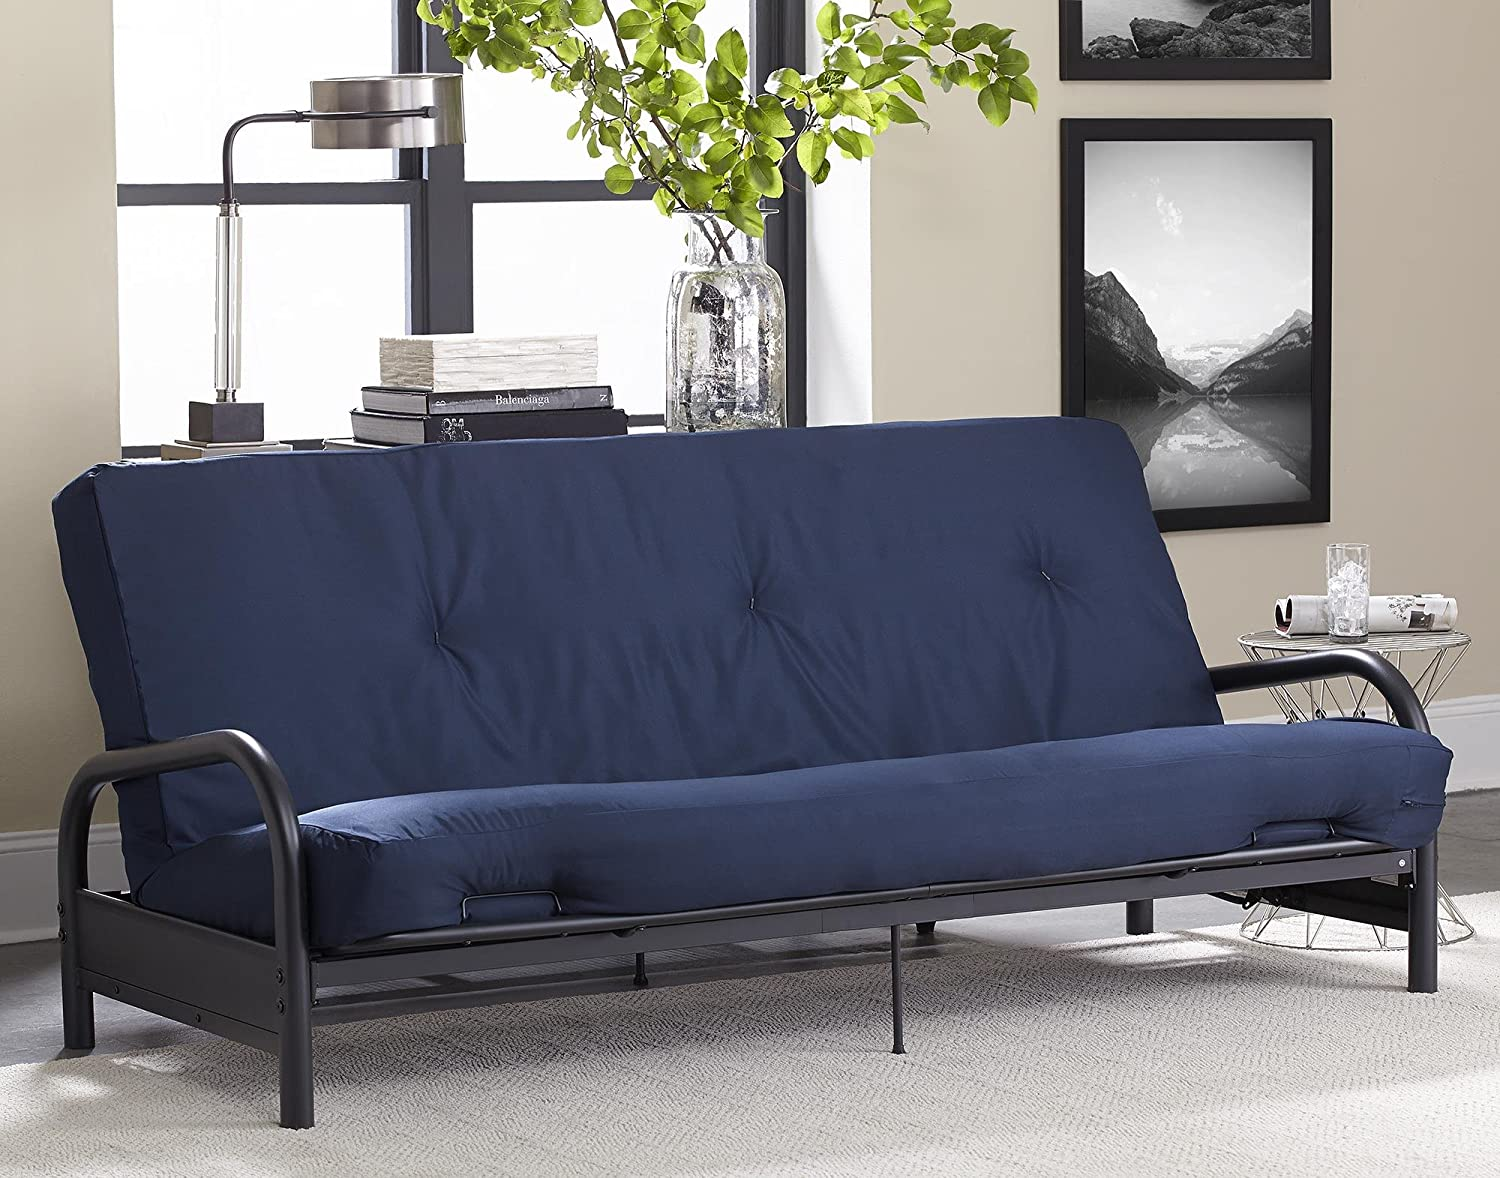 Amazon.com: DHP 8-inch Polyester Futon Mattress, Tufted Design, Full Size,  Navy: Home u0026 Kitchen